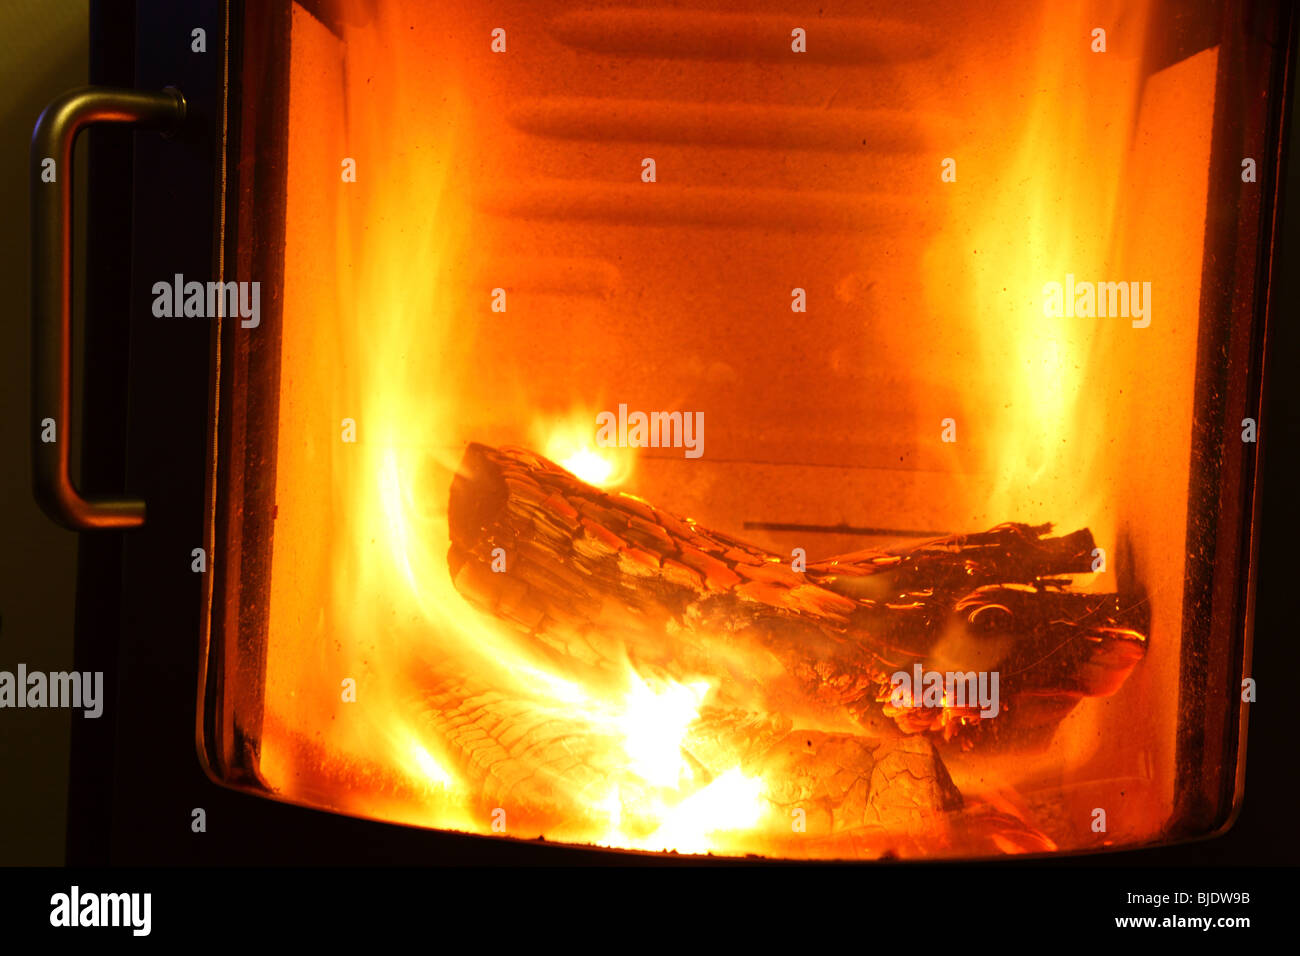 fire place burning wood log stove inside house in winter - Stock Image